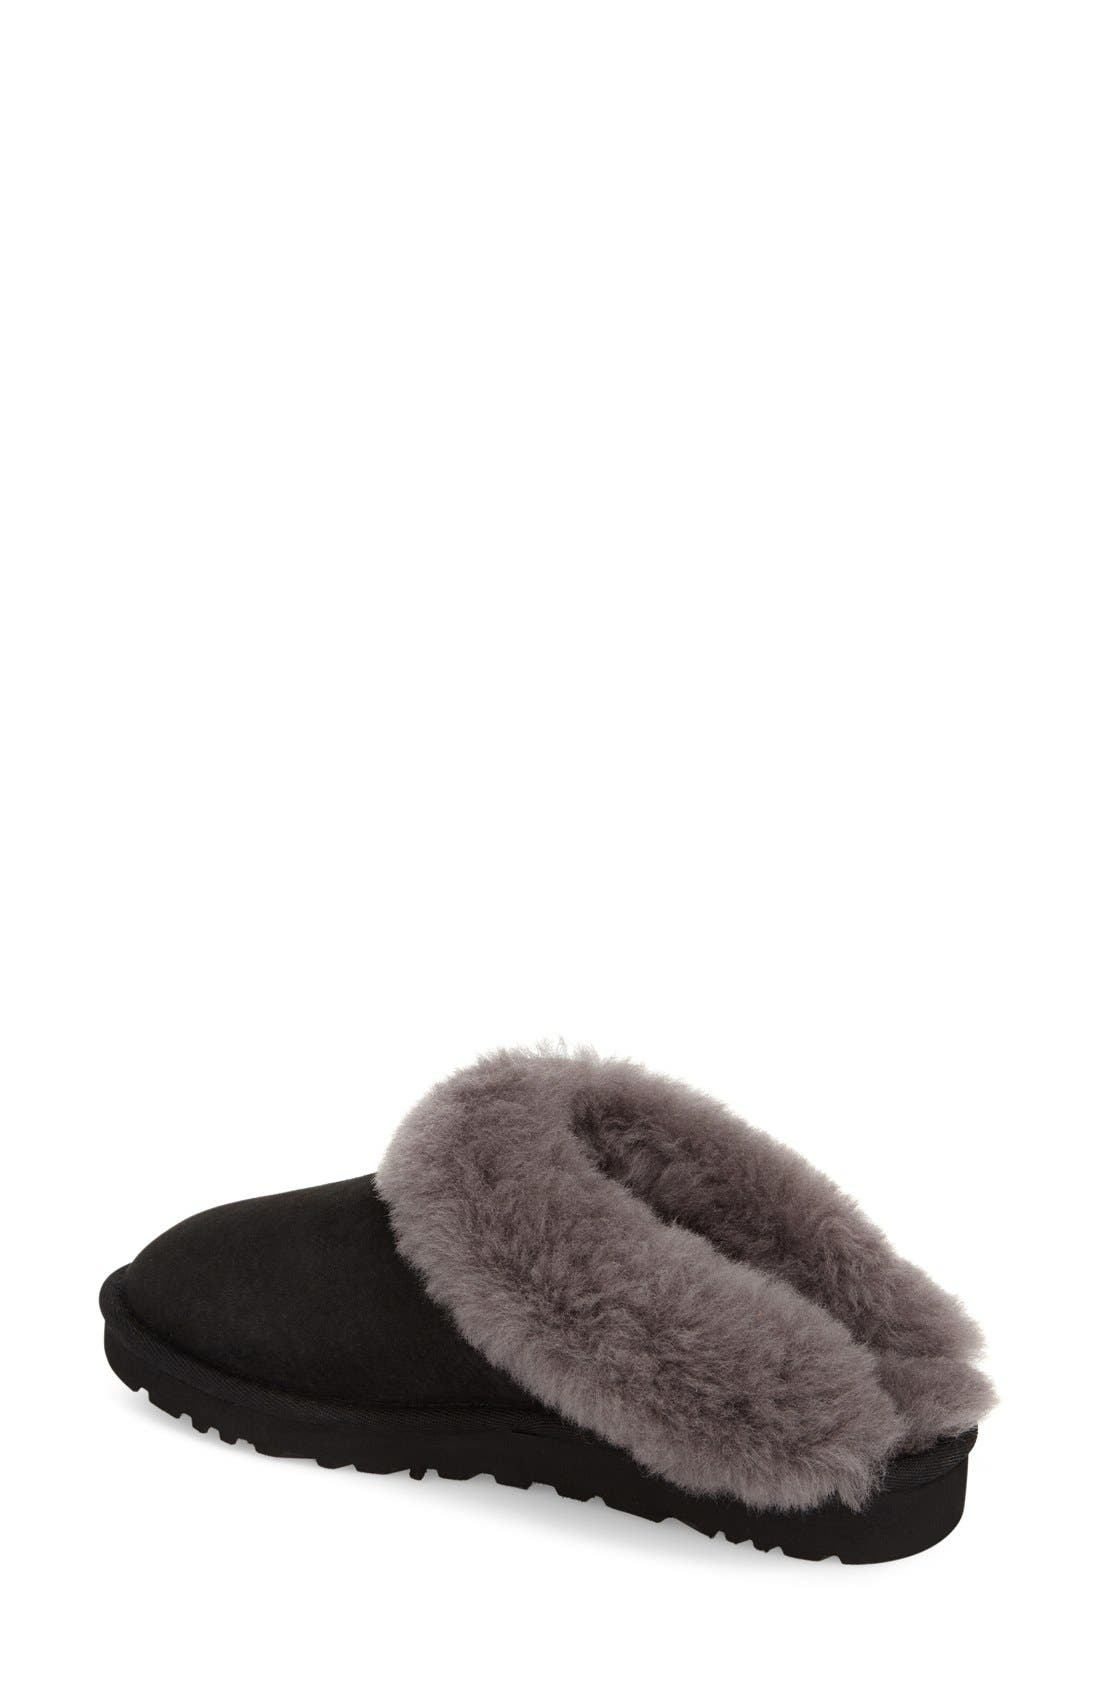 'Cluggette' Genuine Shearling Indoor/Outdoor Slipper,                             Alternate thumbnail 4, color,                             001